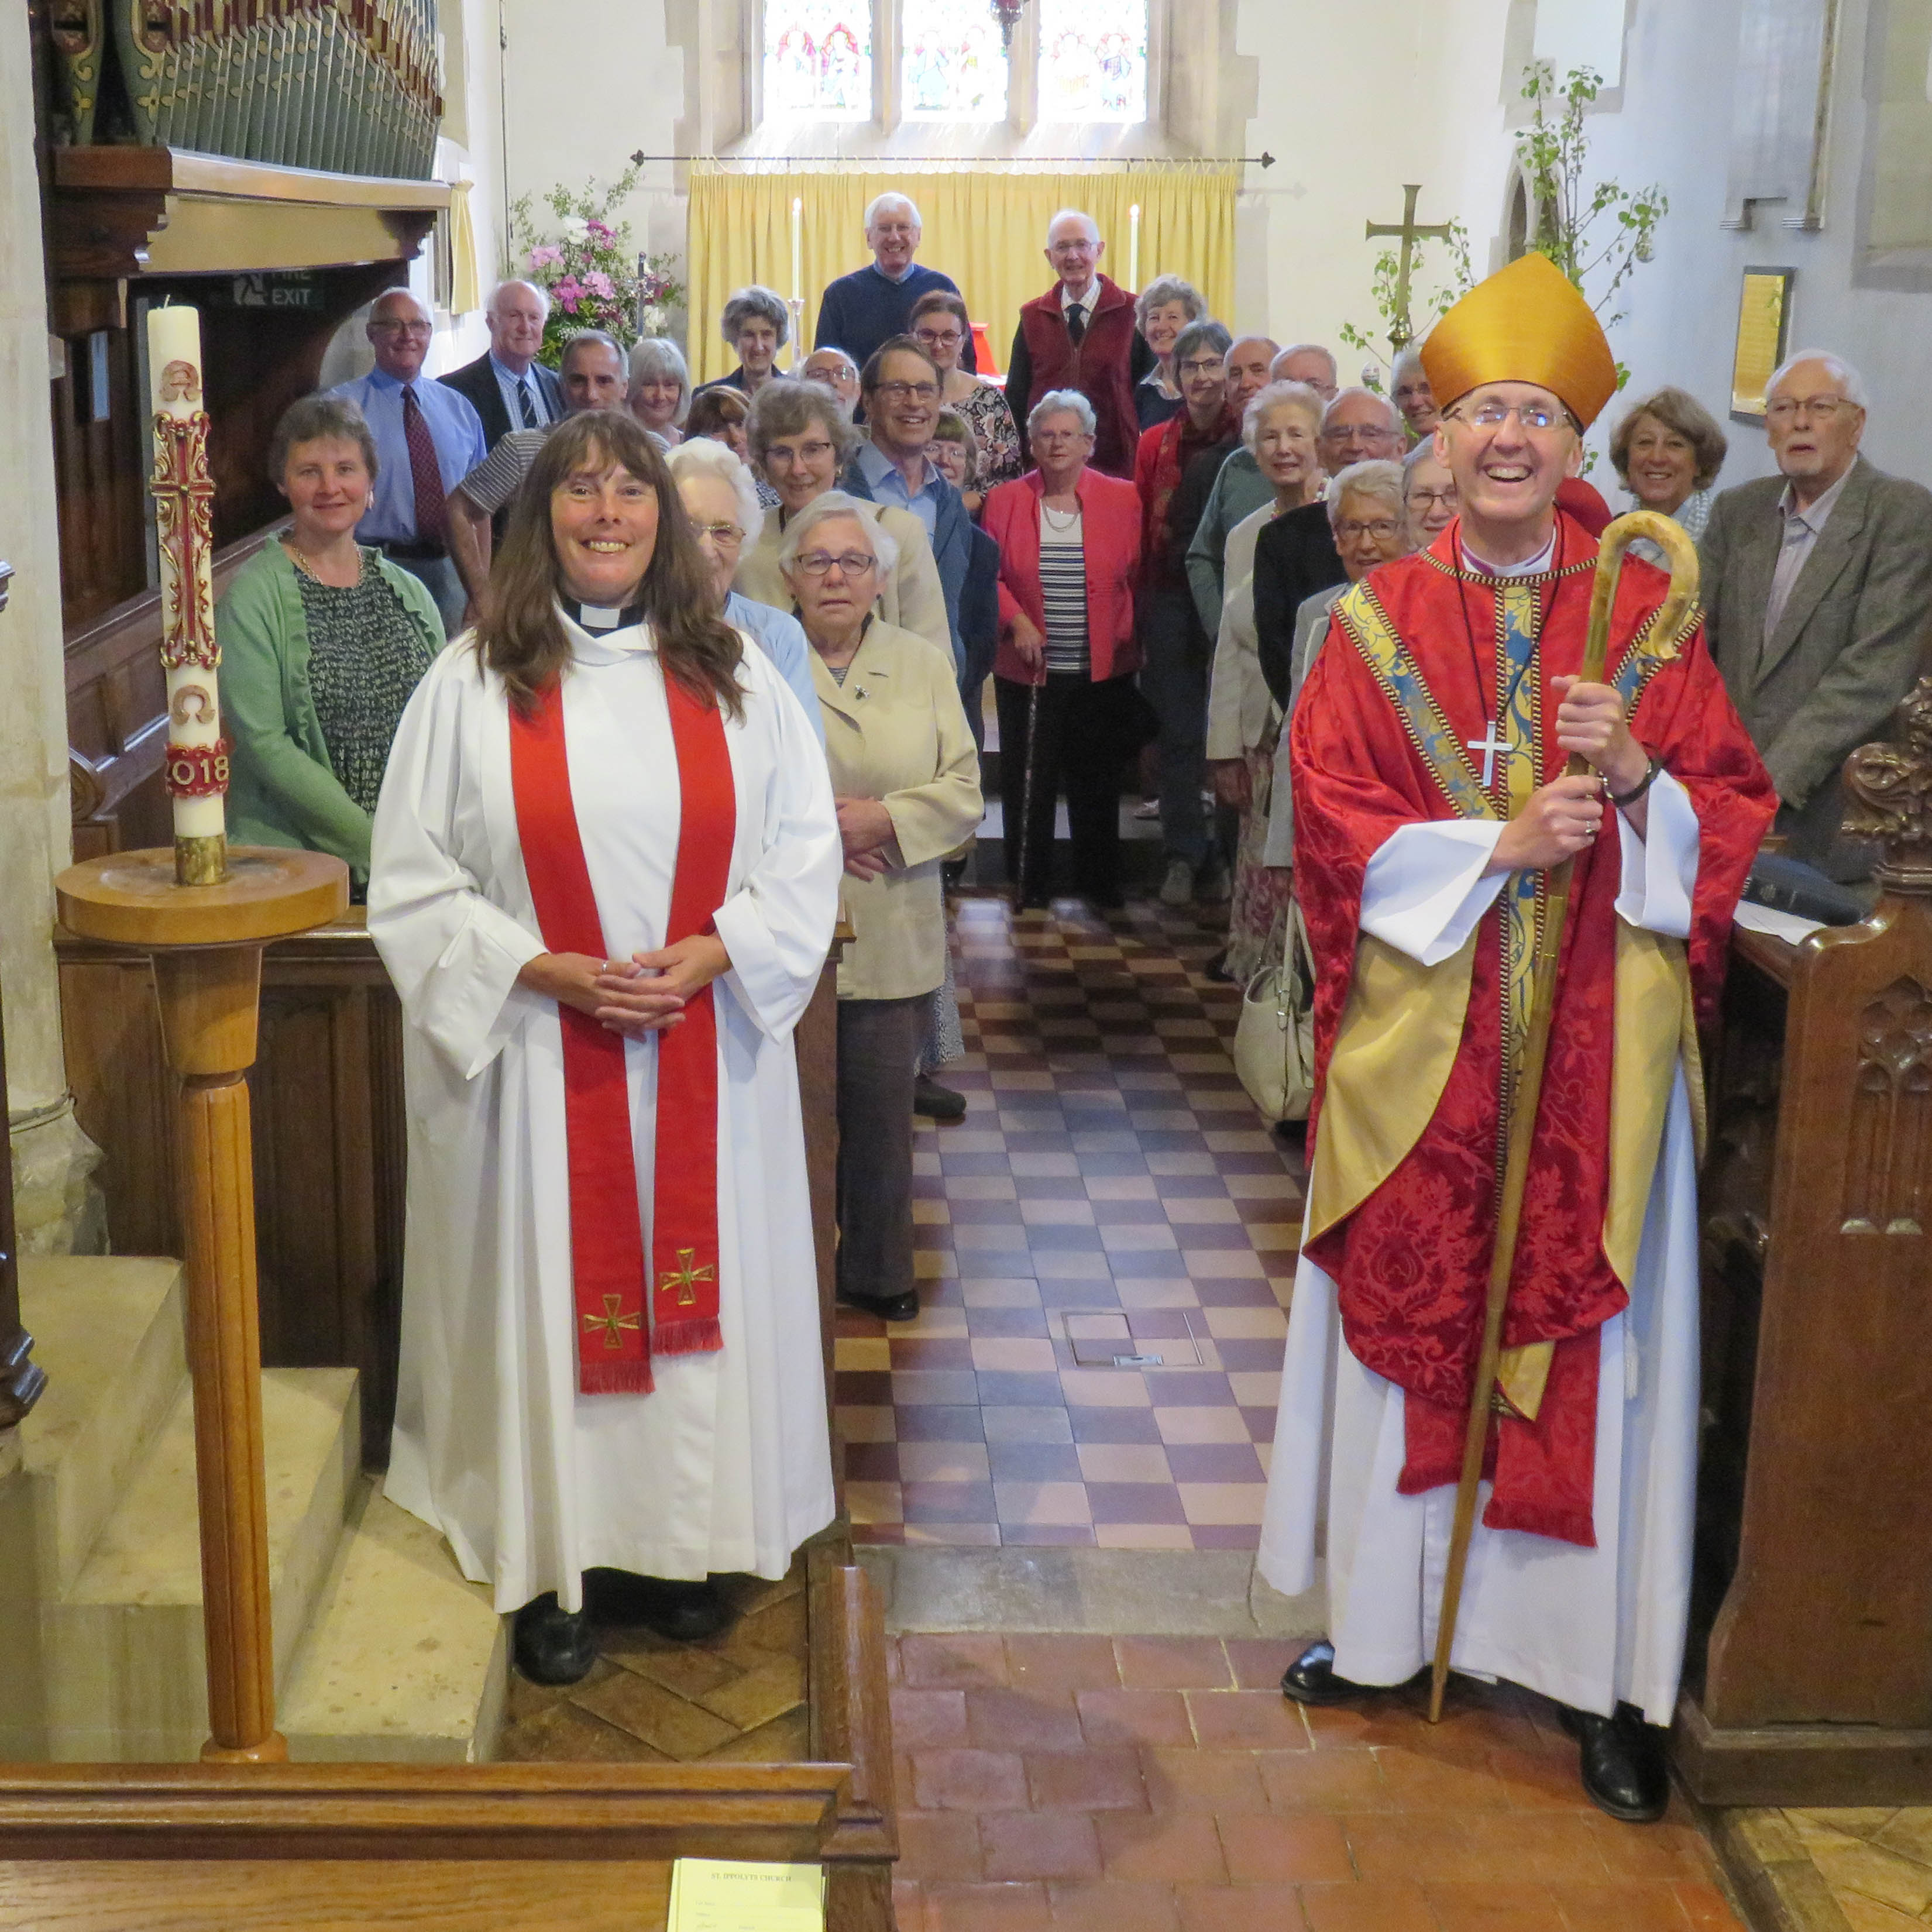 IMG 3572 Bishop of Hertford  Congregation at St Ippolyts 20th May 2018-3572